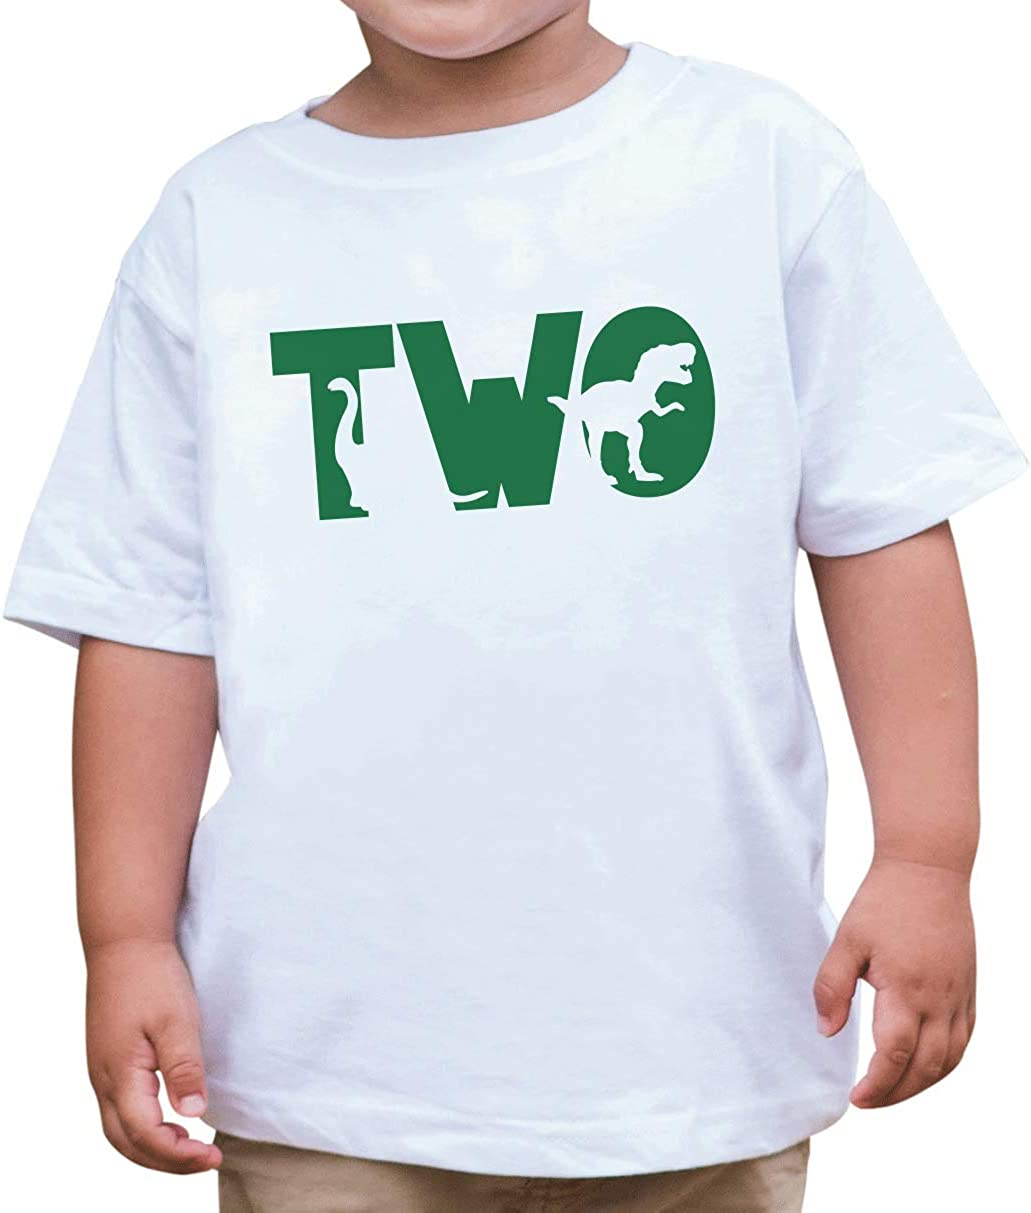 7 ate 9 Apparel Green Two 2 Second 2nd Birthday Dinosaur T-Shirt